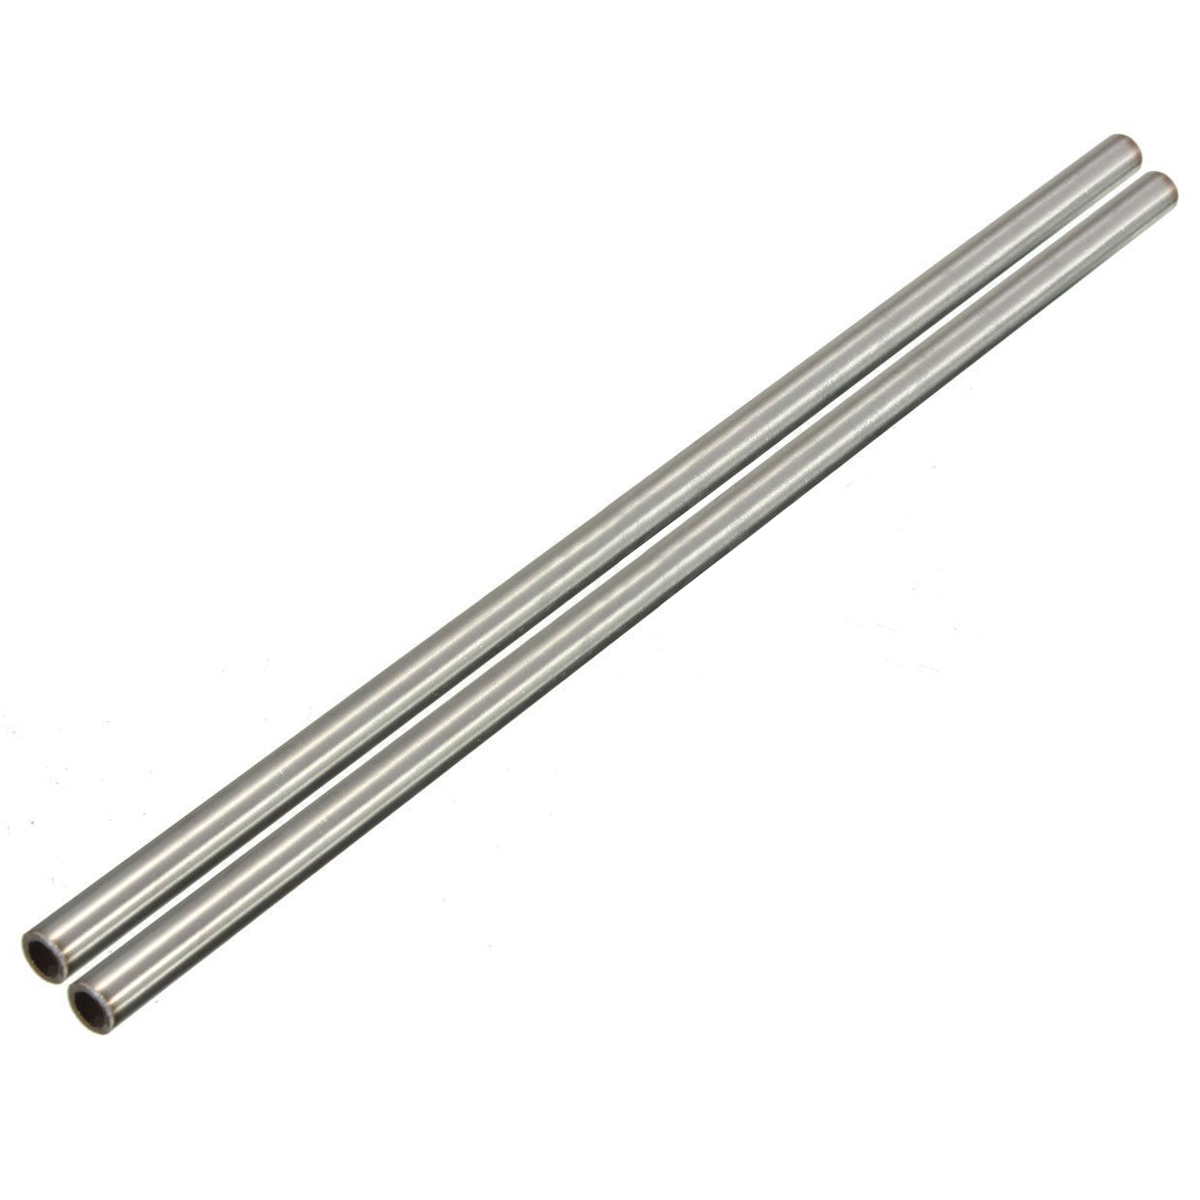 1pc/2pcs Mayitr Silver 304 Stainless Steel Capillary Tube Corrosion Resistant Welded Tool OD 8mm ID 6mm Length 250mm 5pcs 304 stainless seamless steel capillary tube od 5mm x 3mm id length 250mm polished surface rust protection popular